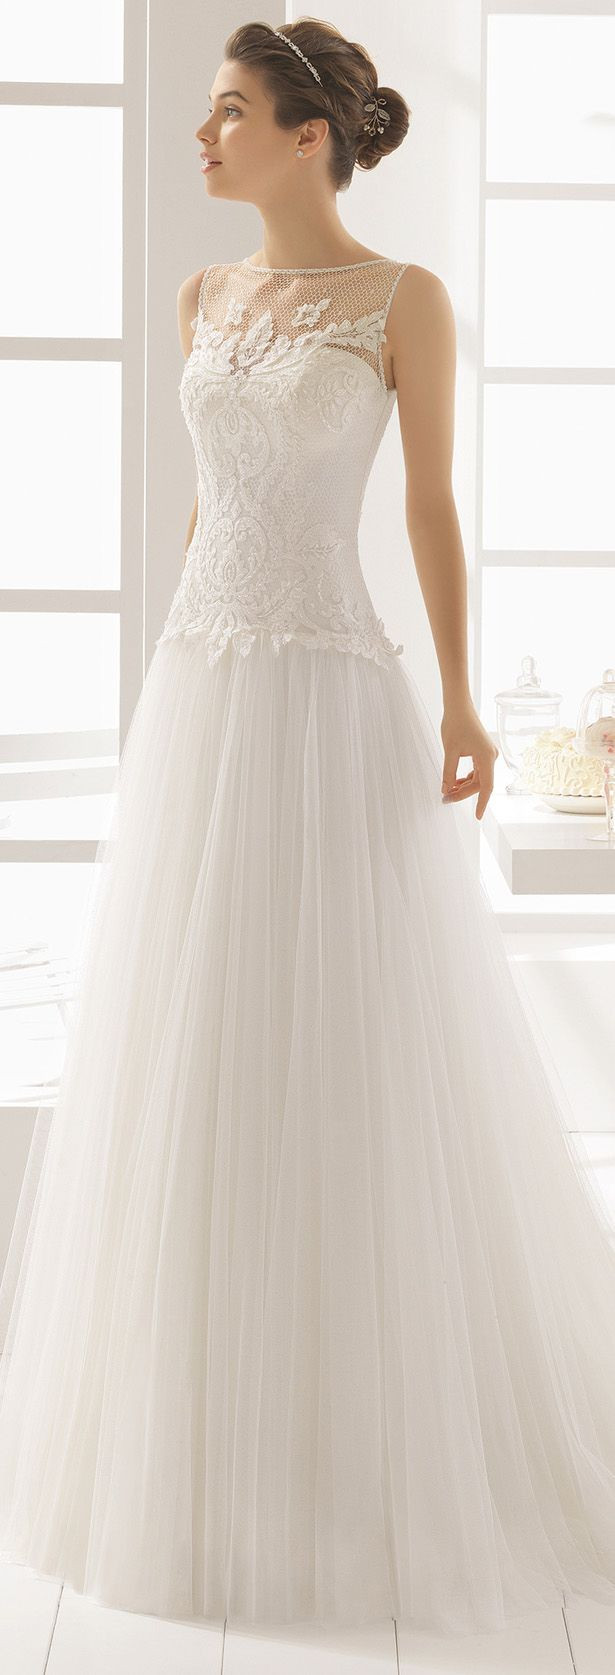 Best Of 1000 Images About Wedding Dresses On Pinterest Bridal Dress Patterns Of Delightful 43 Pictures Bridal Dress Patterns